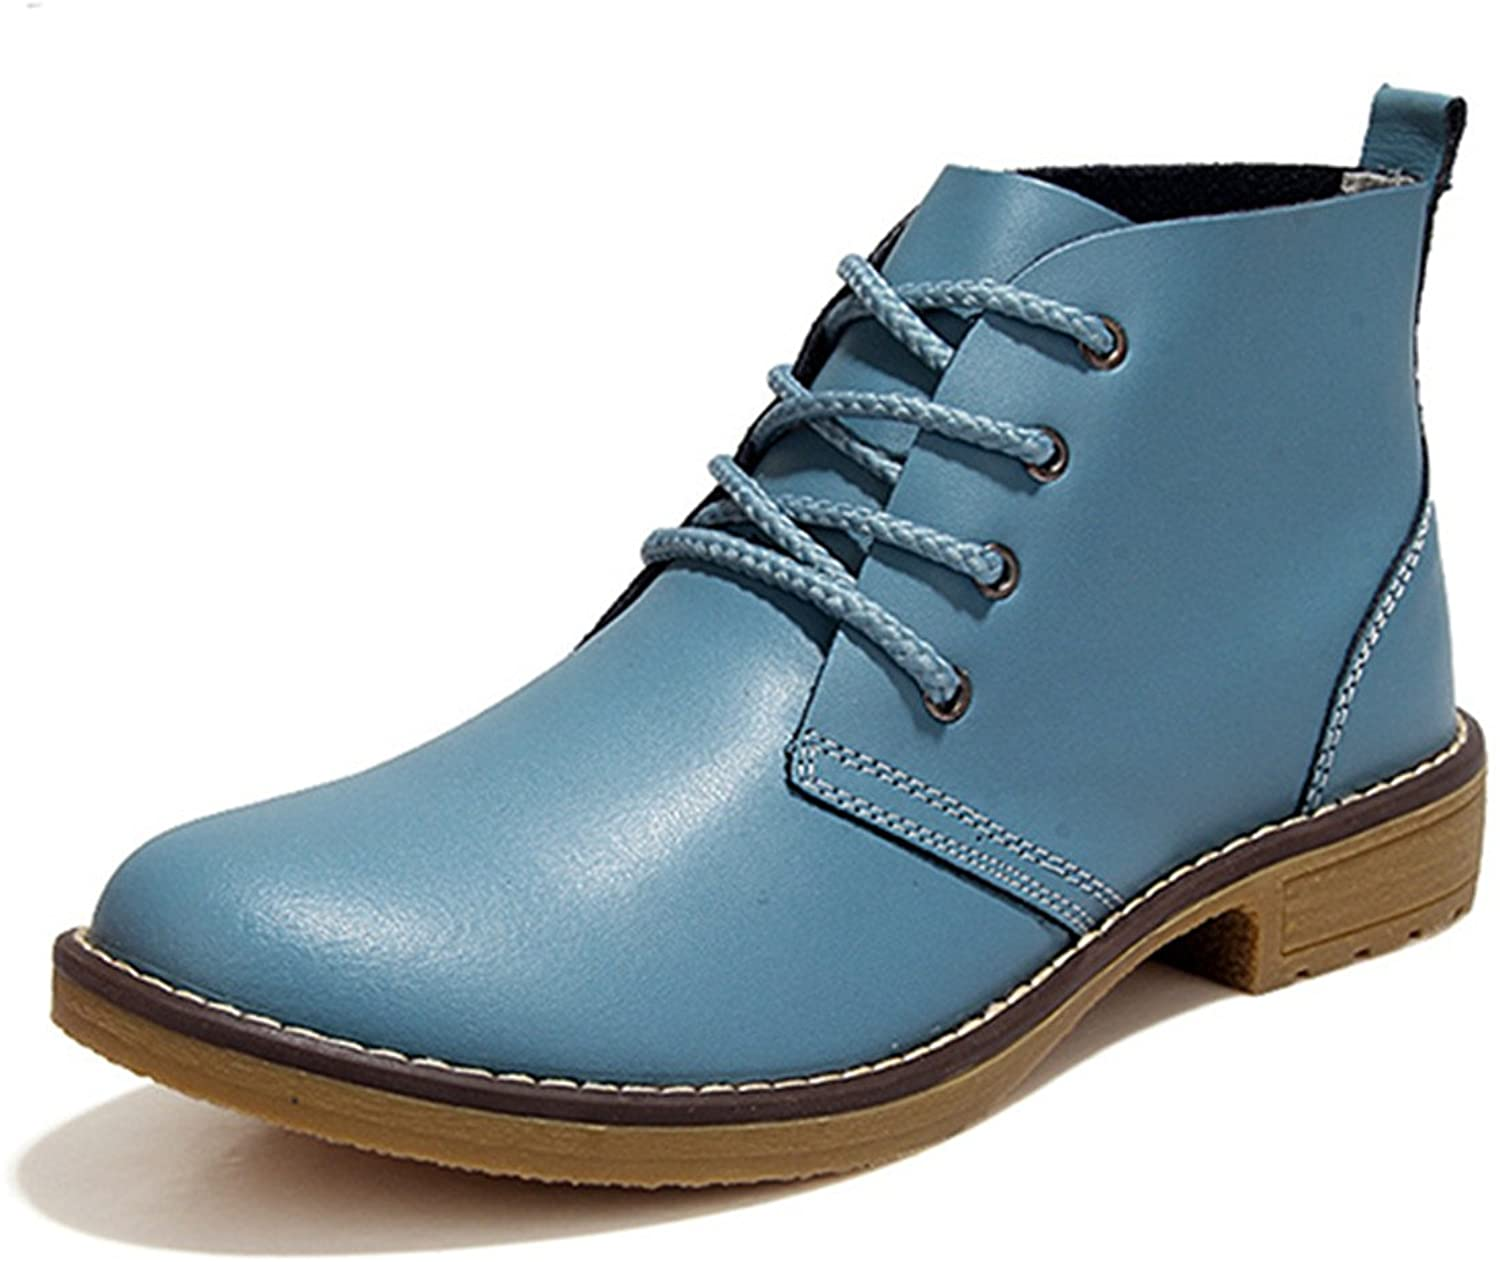 Gracosy Chukka Boot for Women, Female Faux Leather Lace Up Ankle Bootie Winter shoes Snow Booties